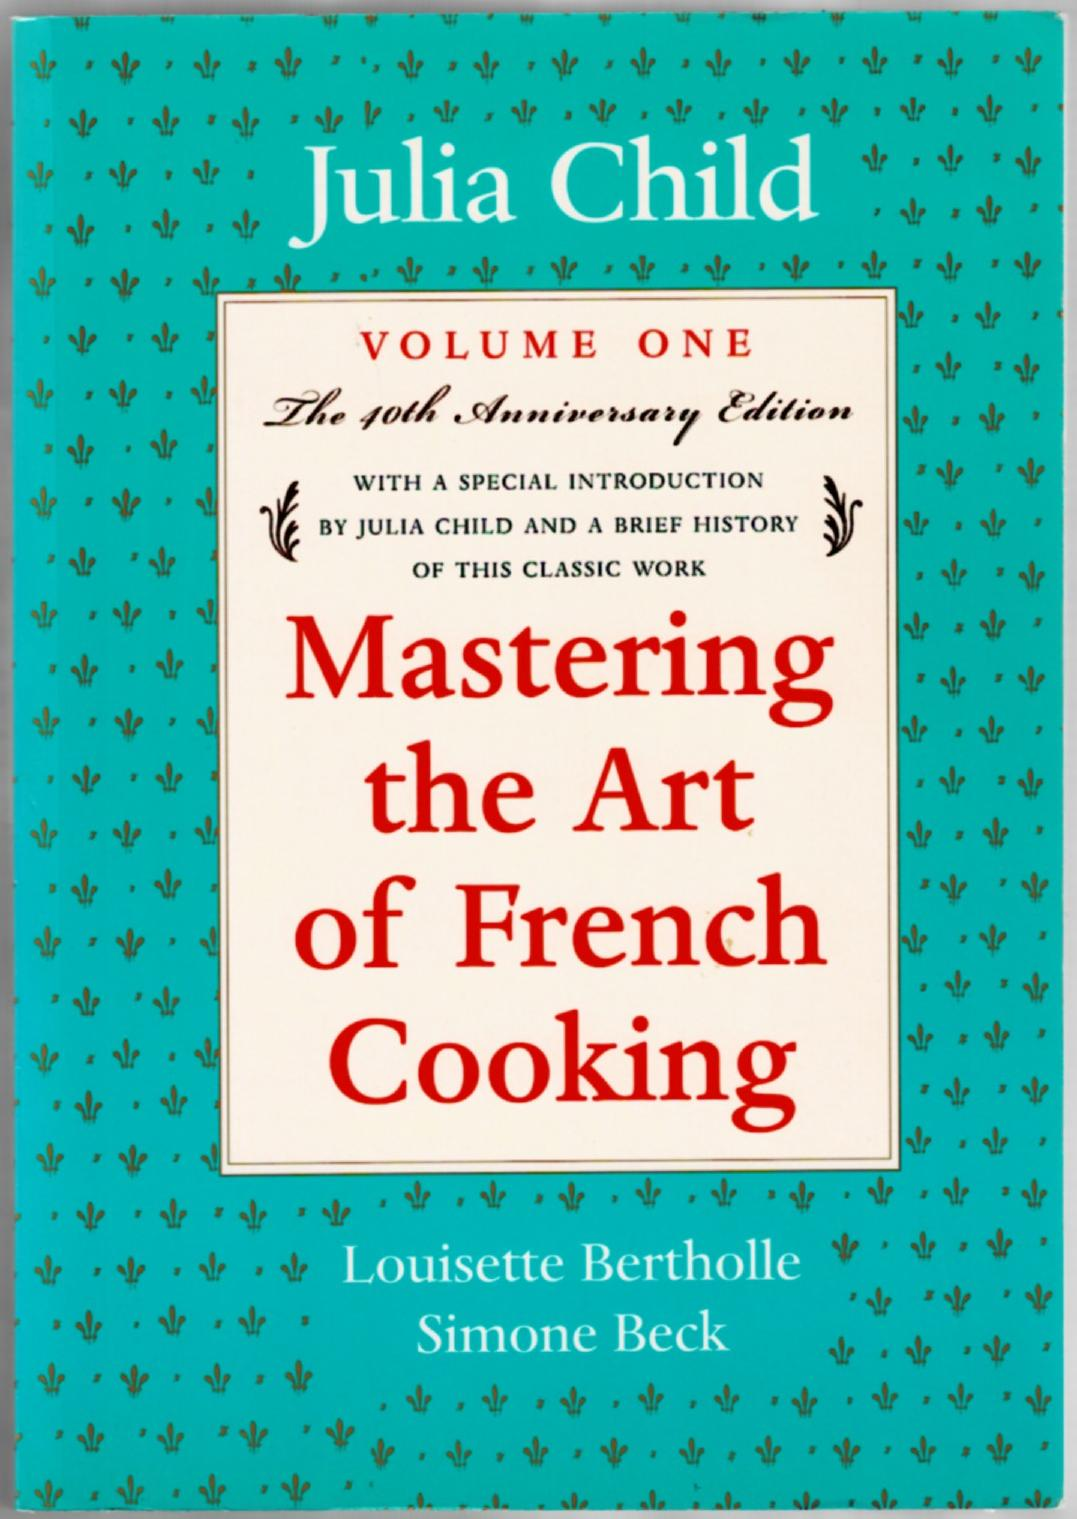 Image for Mastering the Art of French Cooking, Vol. 1: The 40th Anniversary Edition